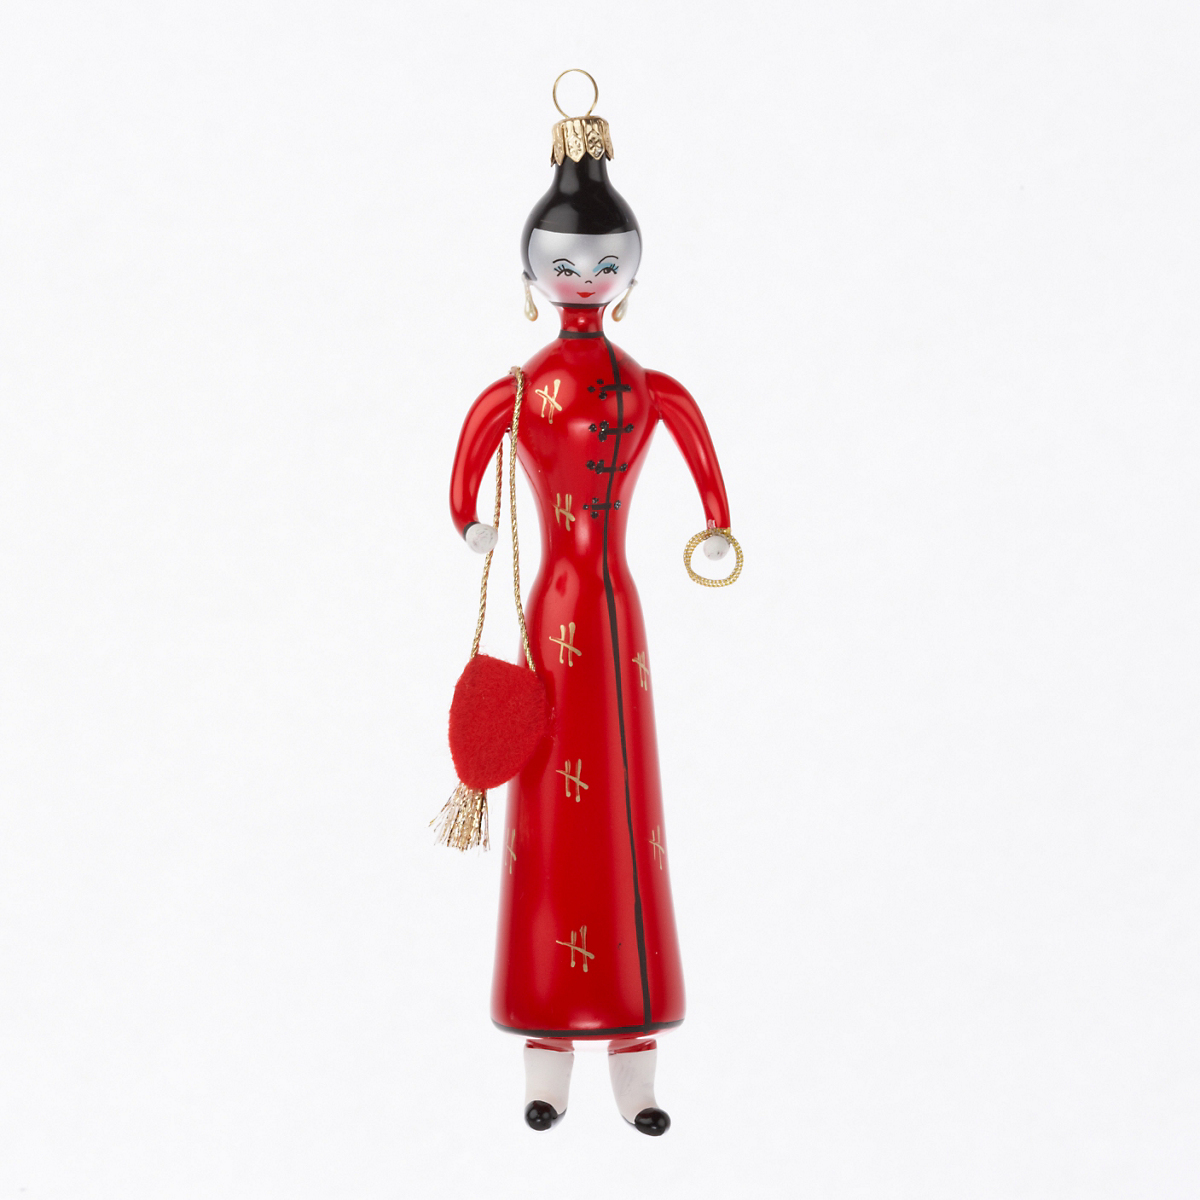 Shanghai Lady Christmas Ornament